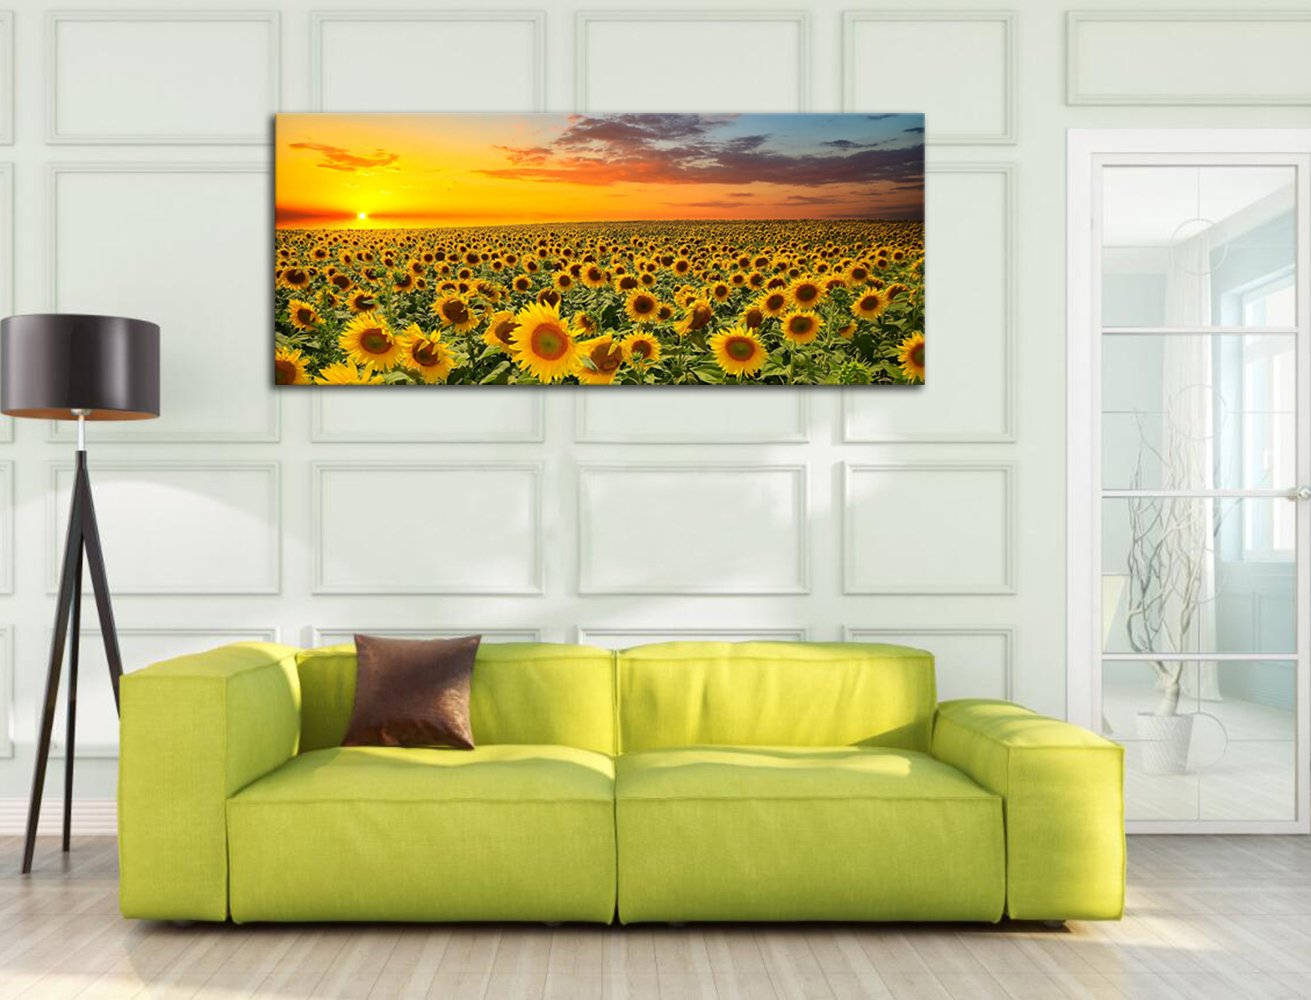 Amazon.com: Sunflower Canvas Wall Art Prints, Brilliant Sunflower ...